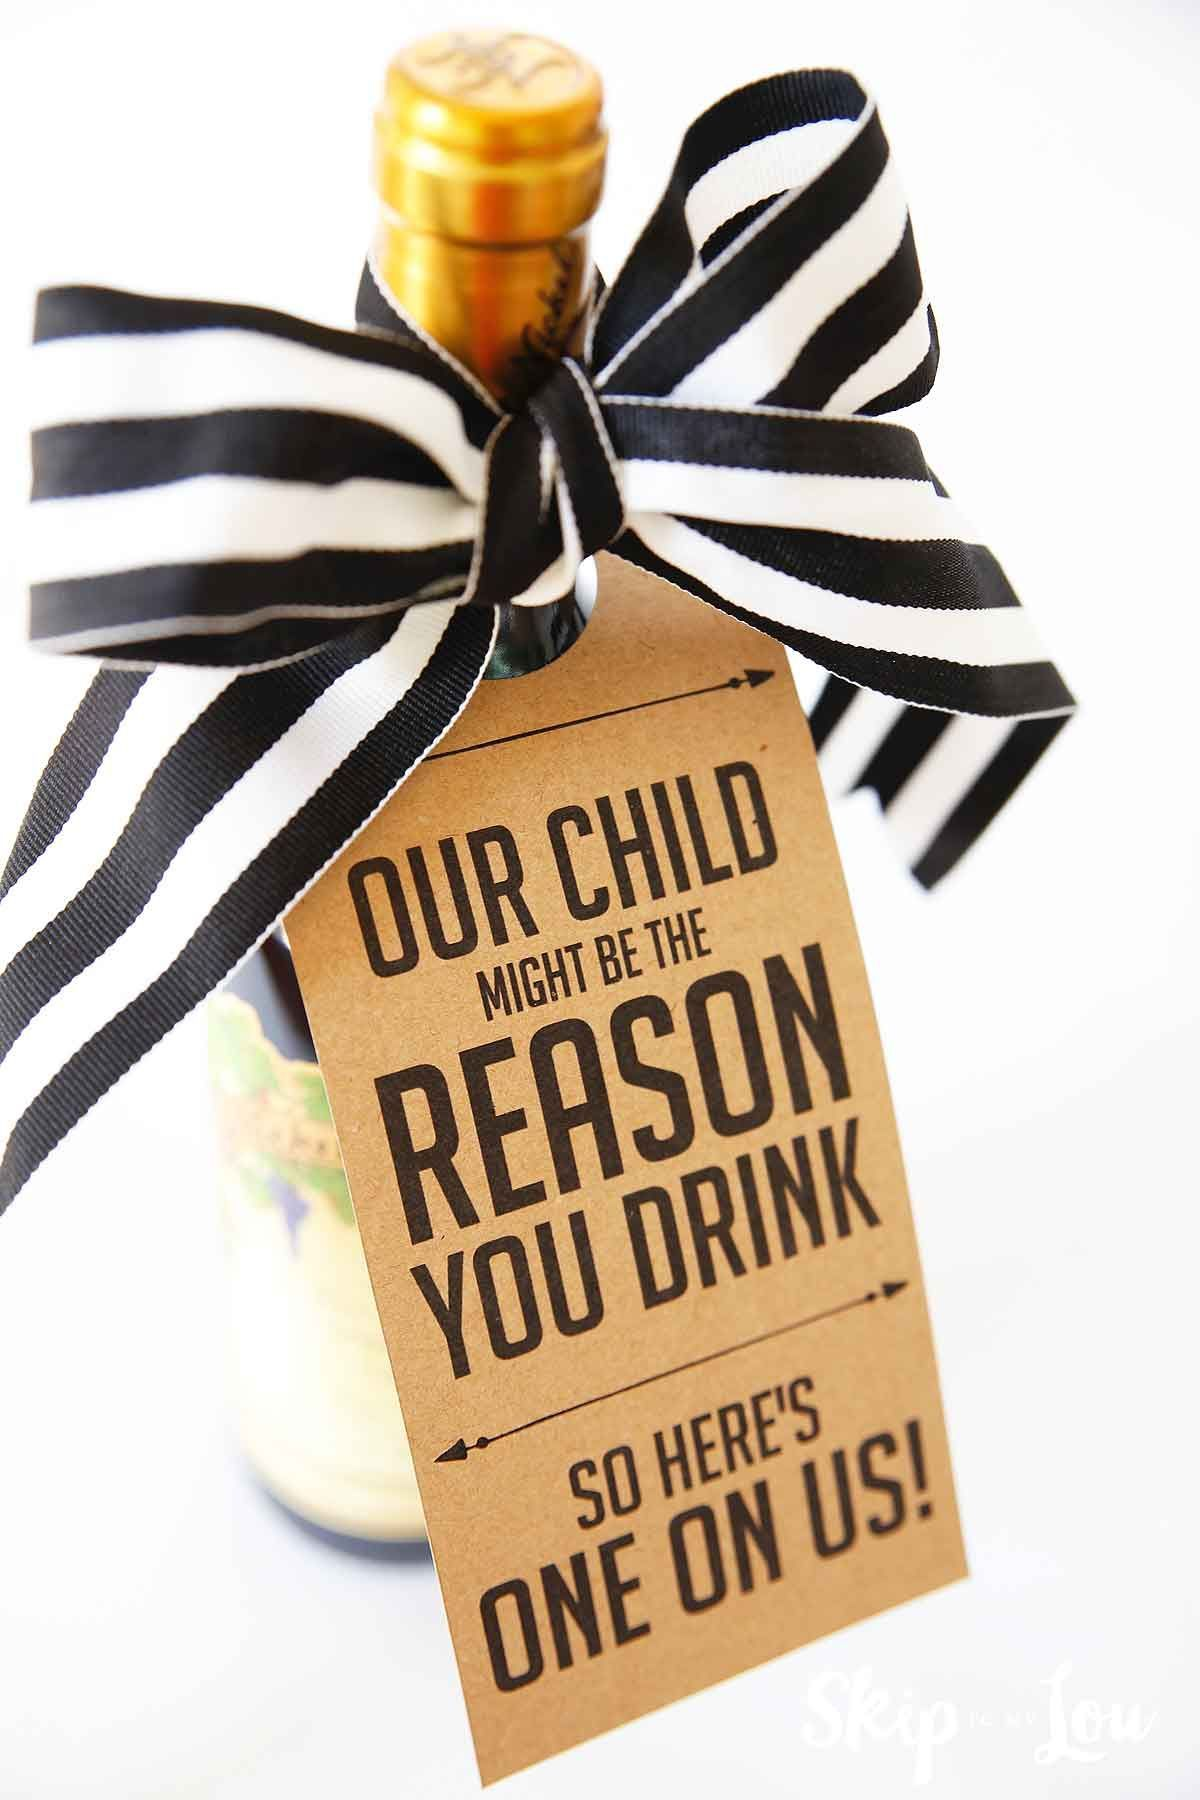 My Child Might be the Reason you Drink Teacher Wine Gift {FREE Printable tag} #teachergifts